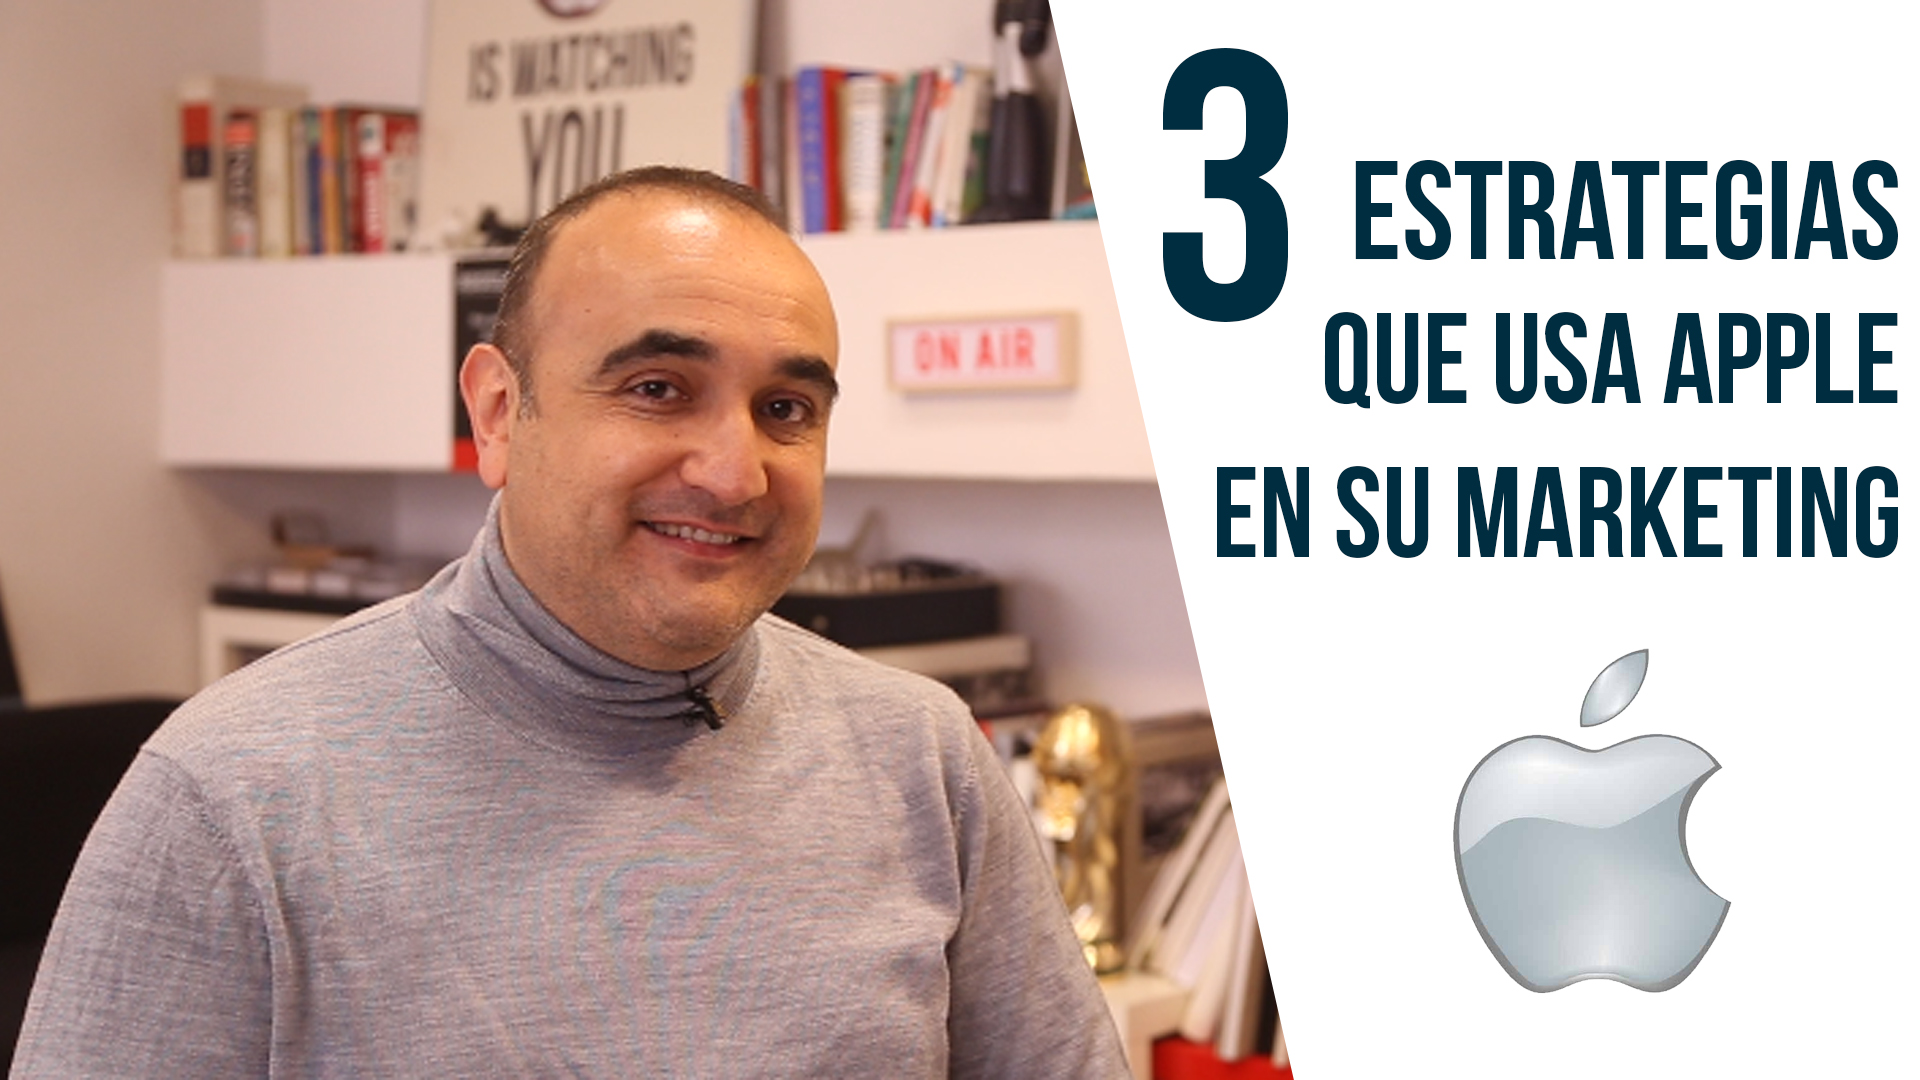 3 Claves de la Estrategia de Marketing de Apple